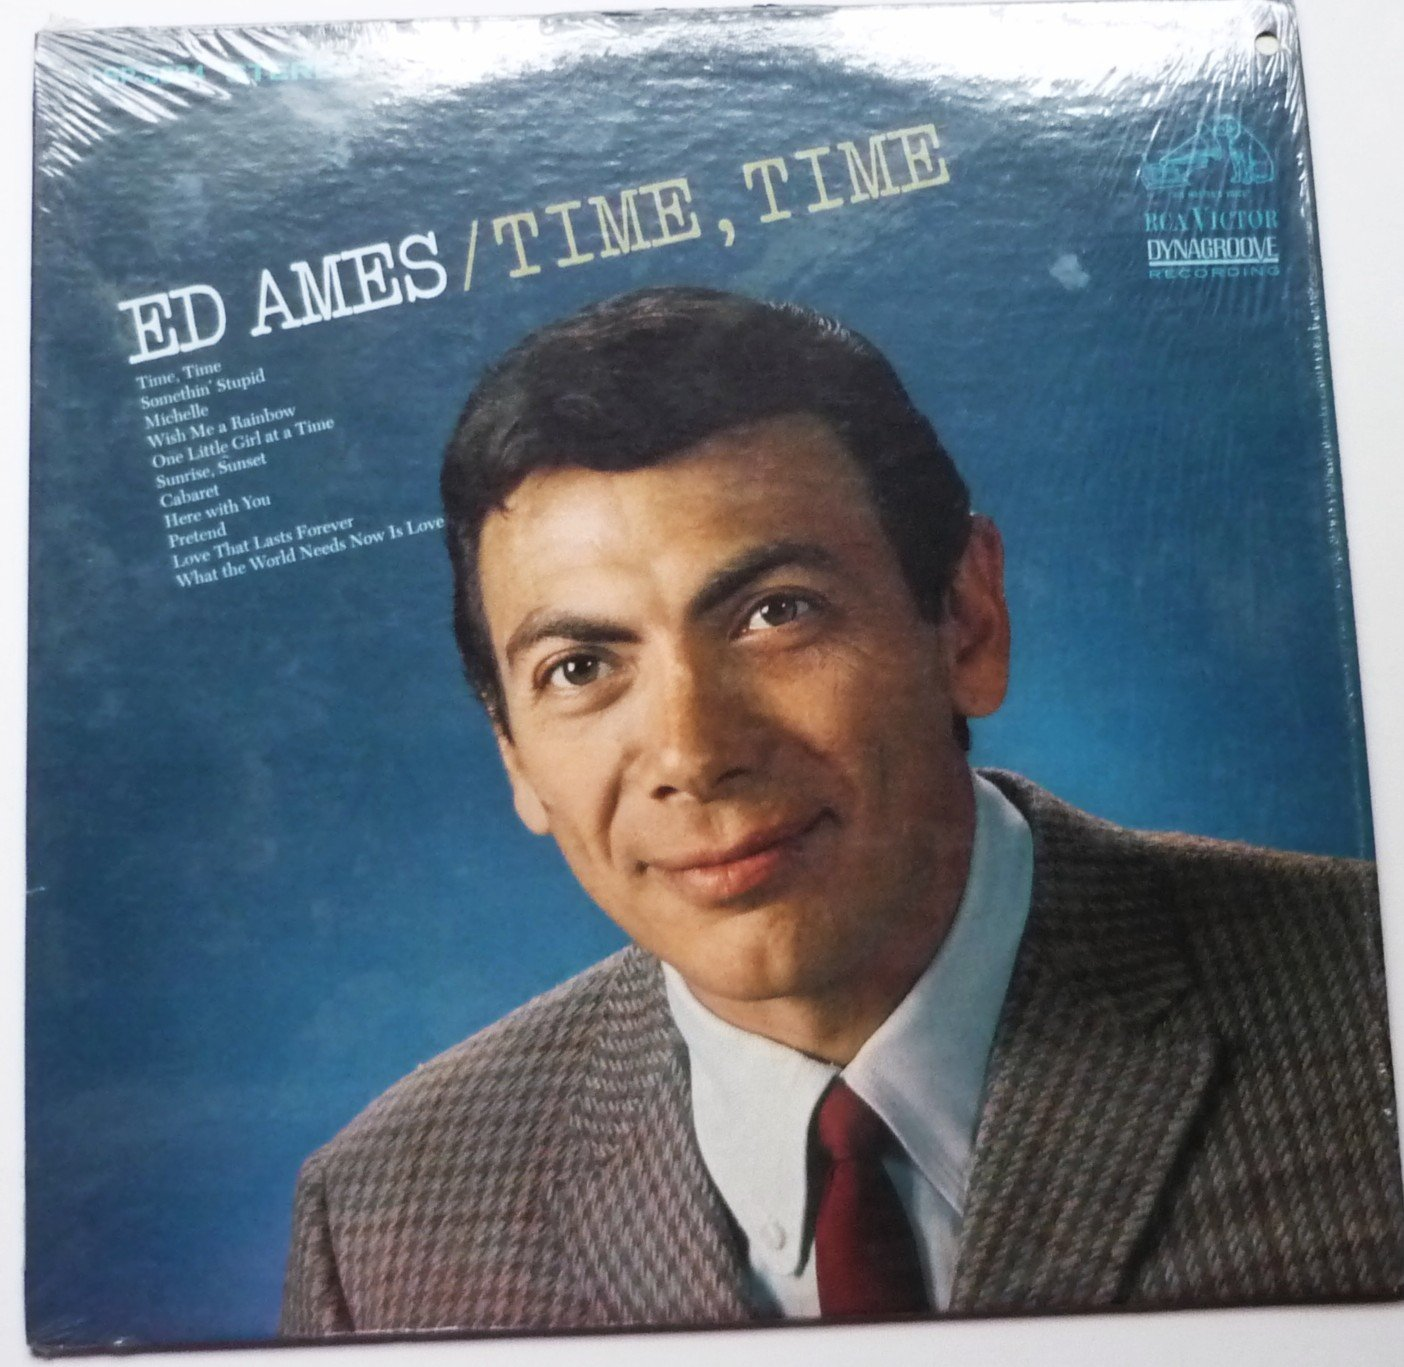 Time Time lp by Ed Ames